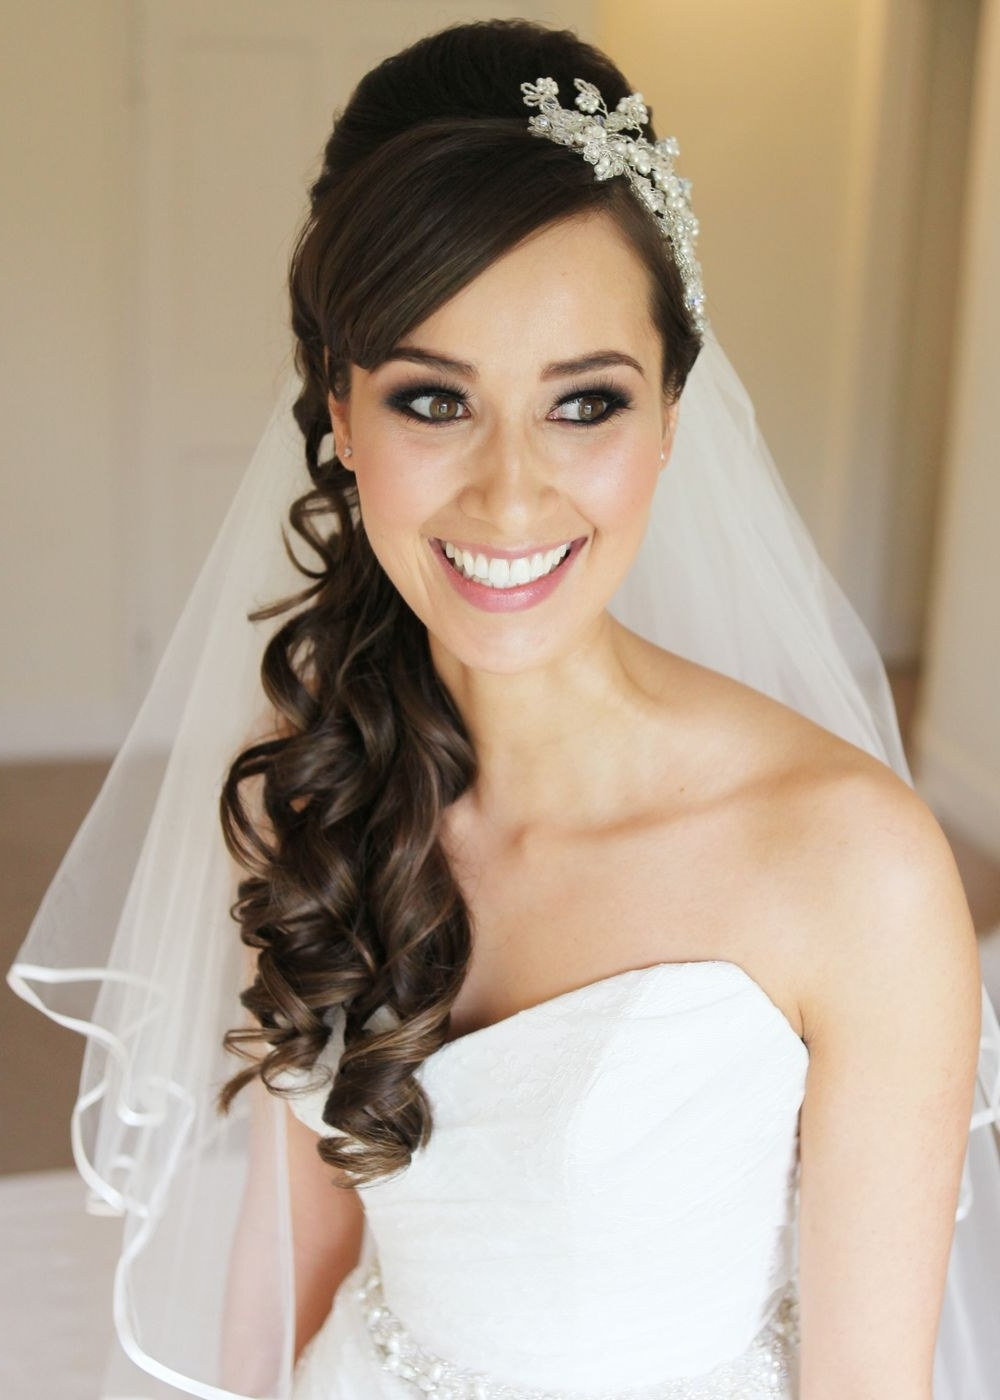 15 Fabulous Half Up Half Down Wedding Hairstyles (View 2 of 15)